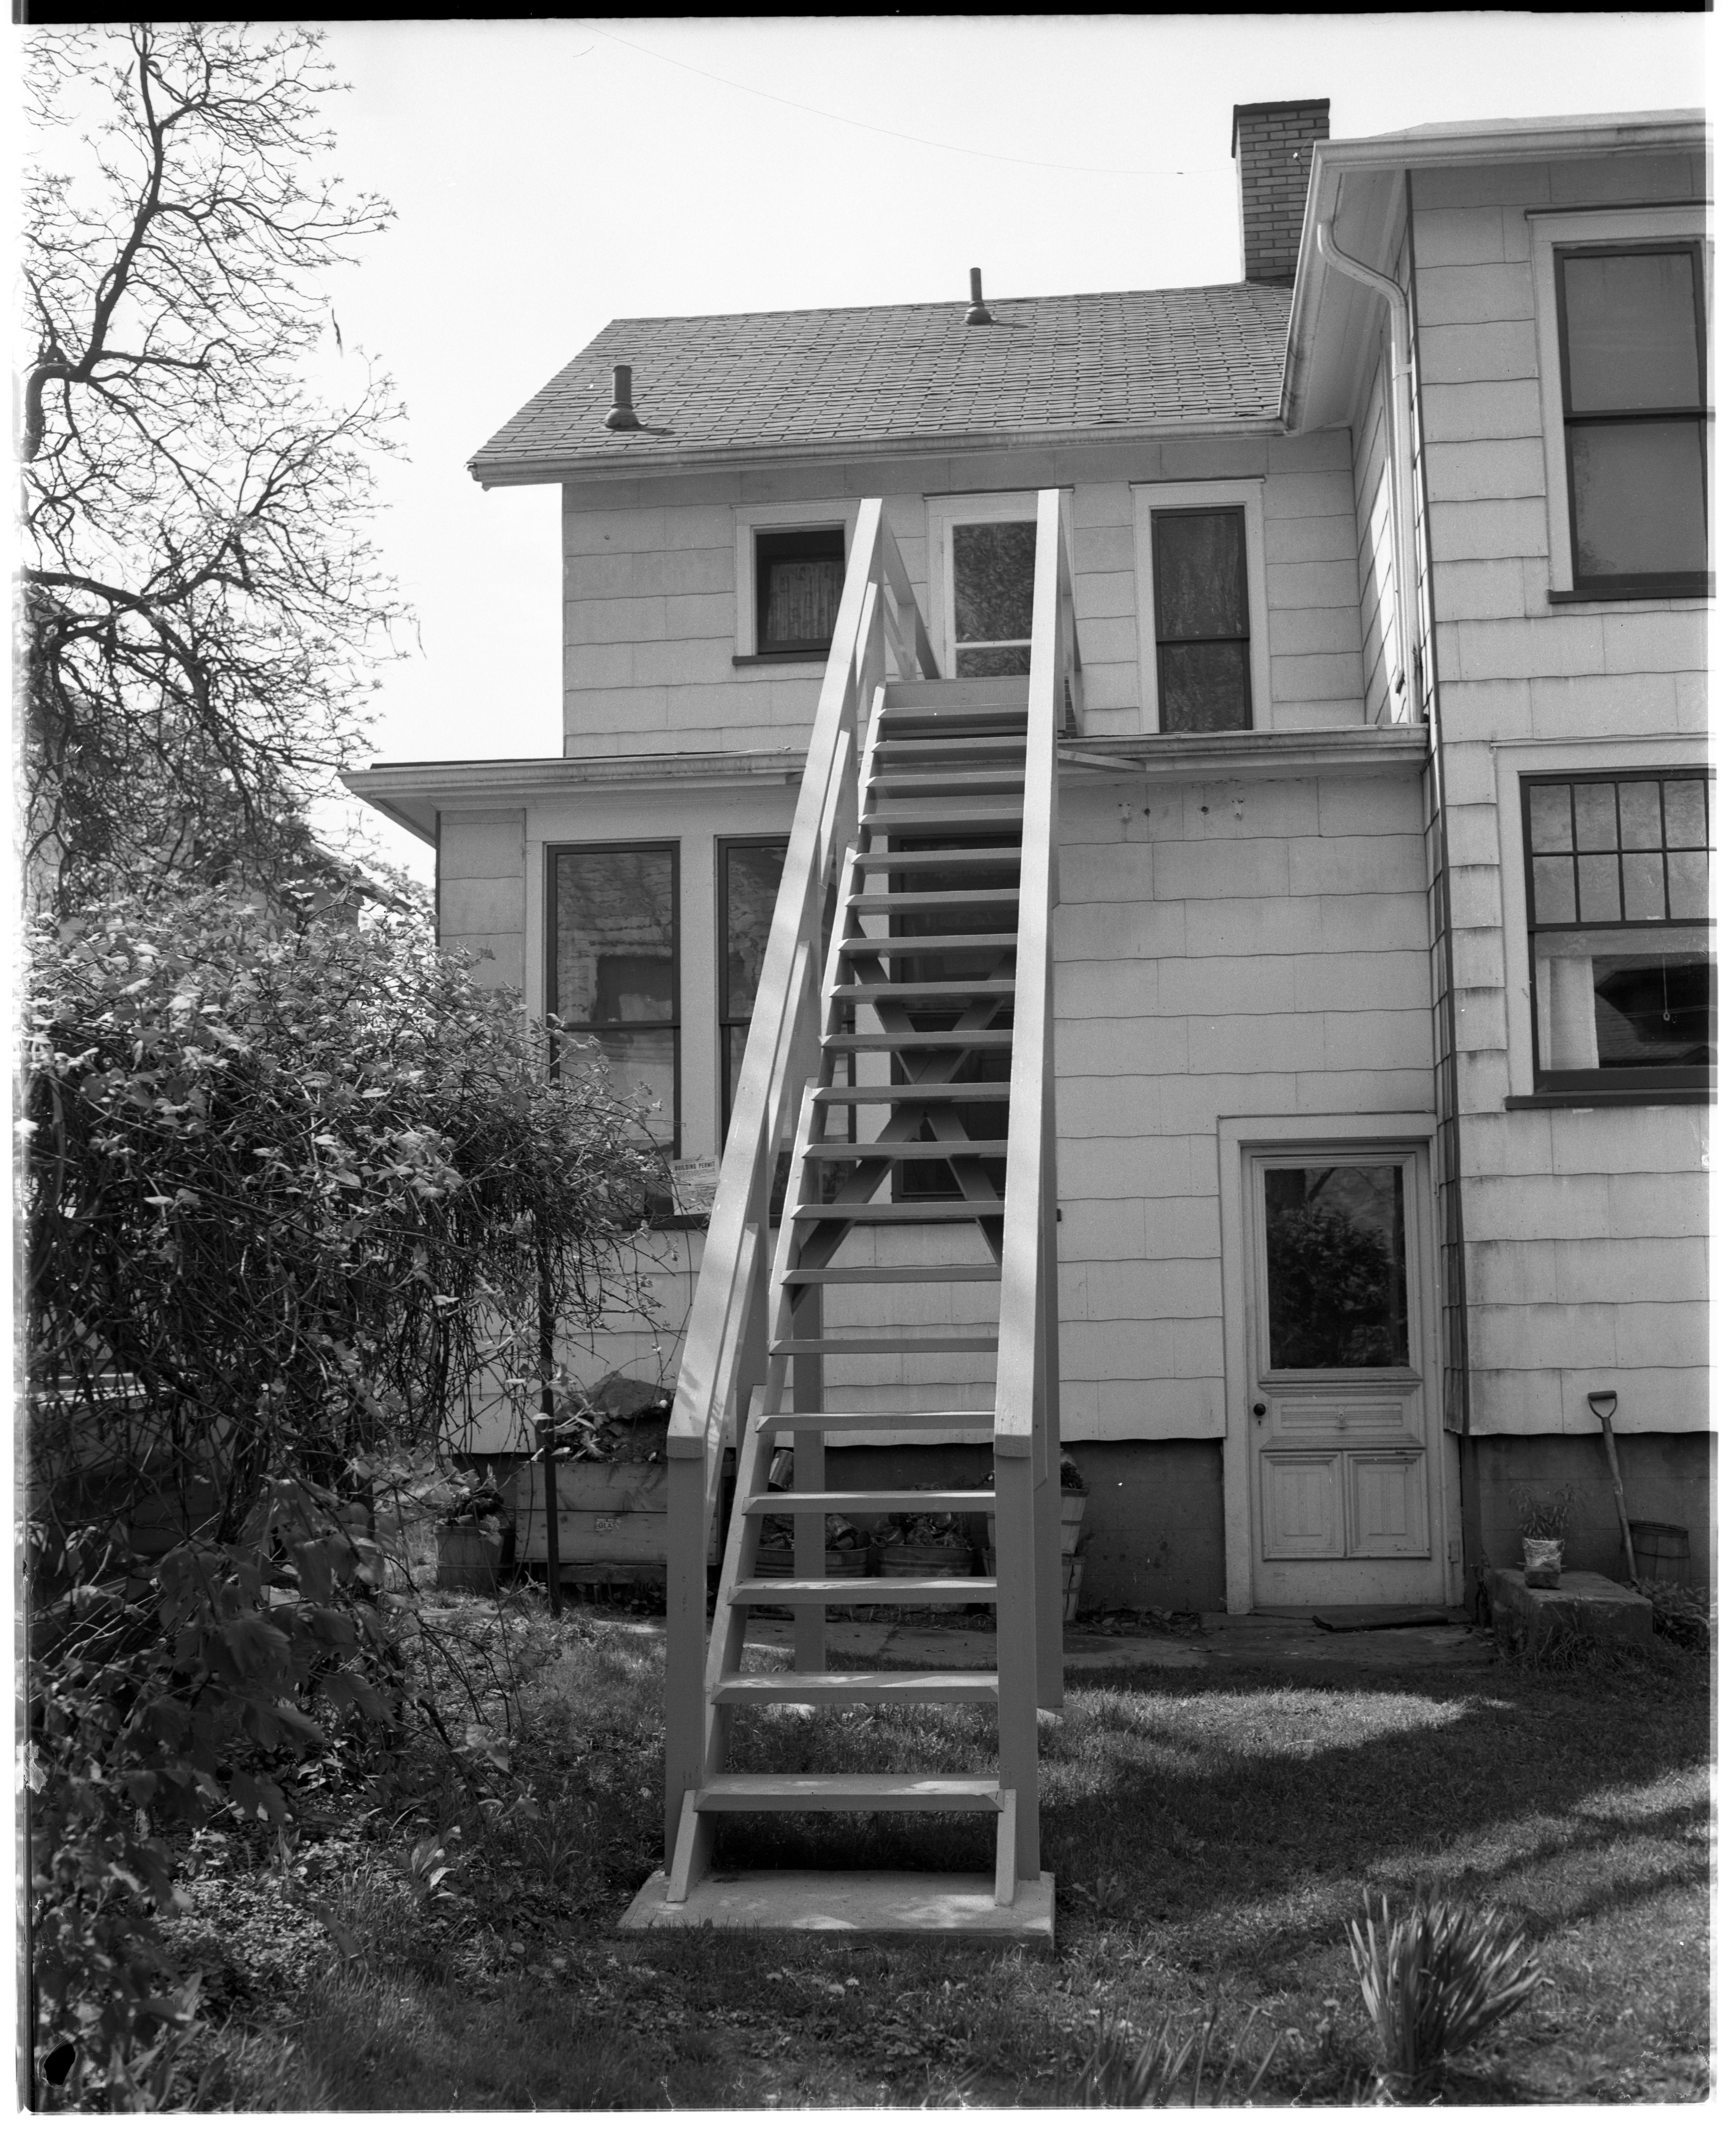 New Fire Escape at 607 E. Ann St., May 1955 image